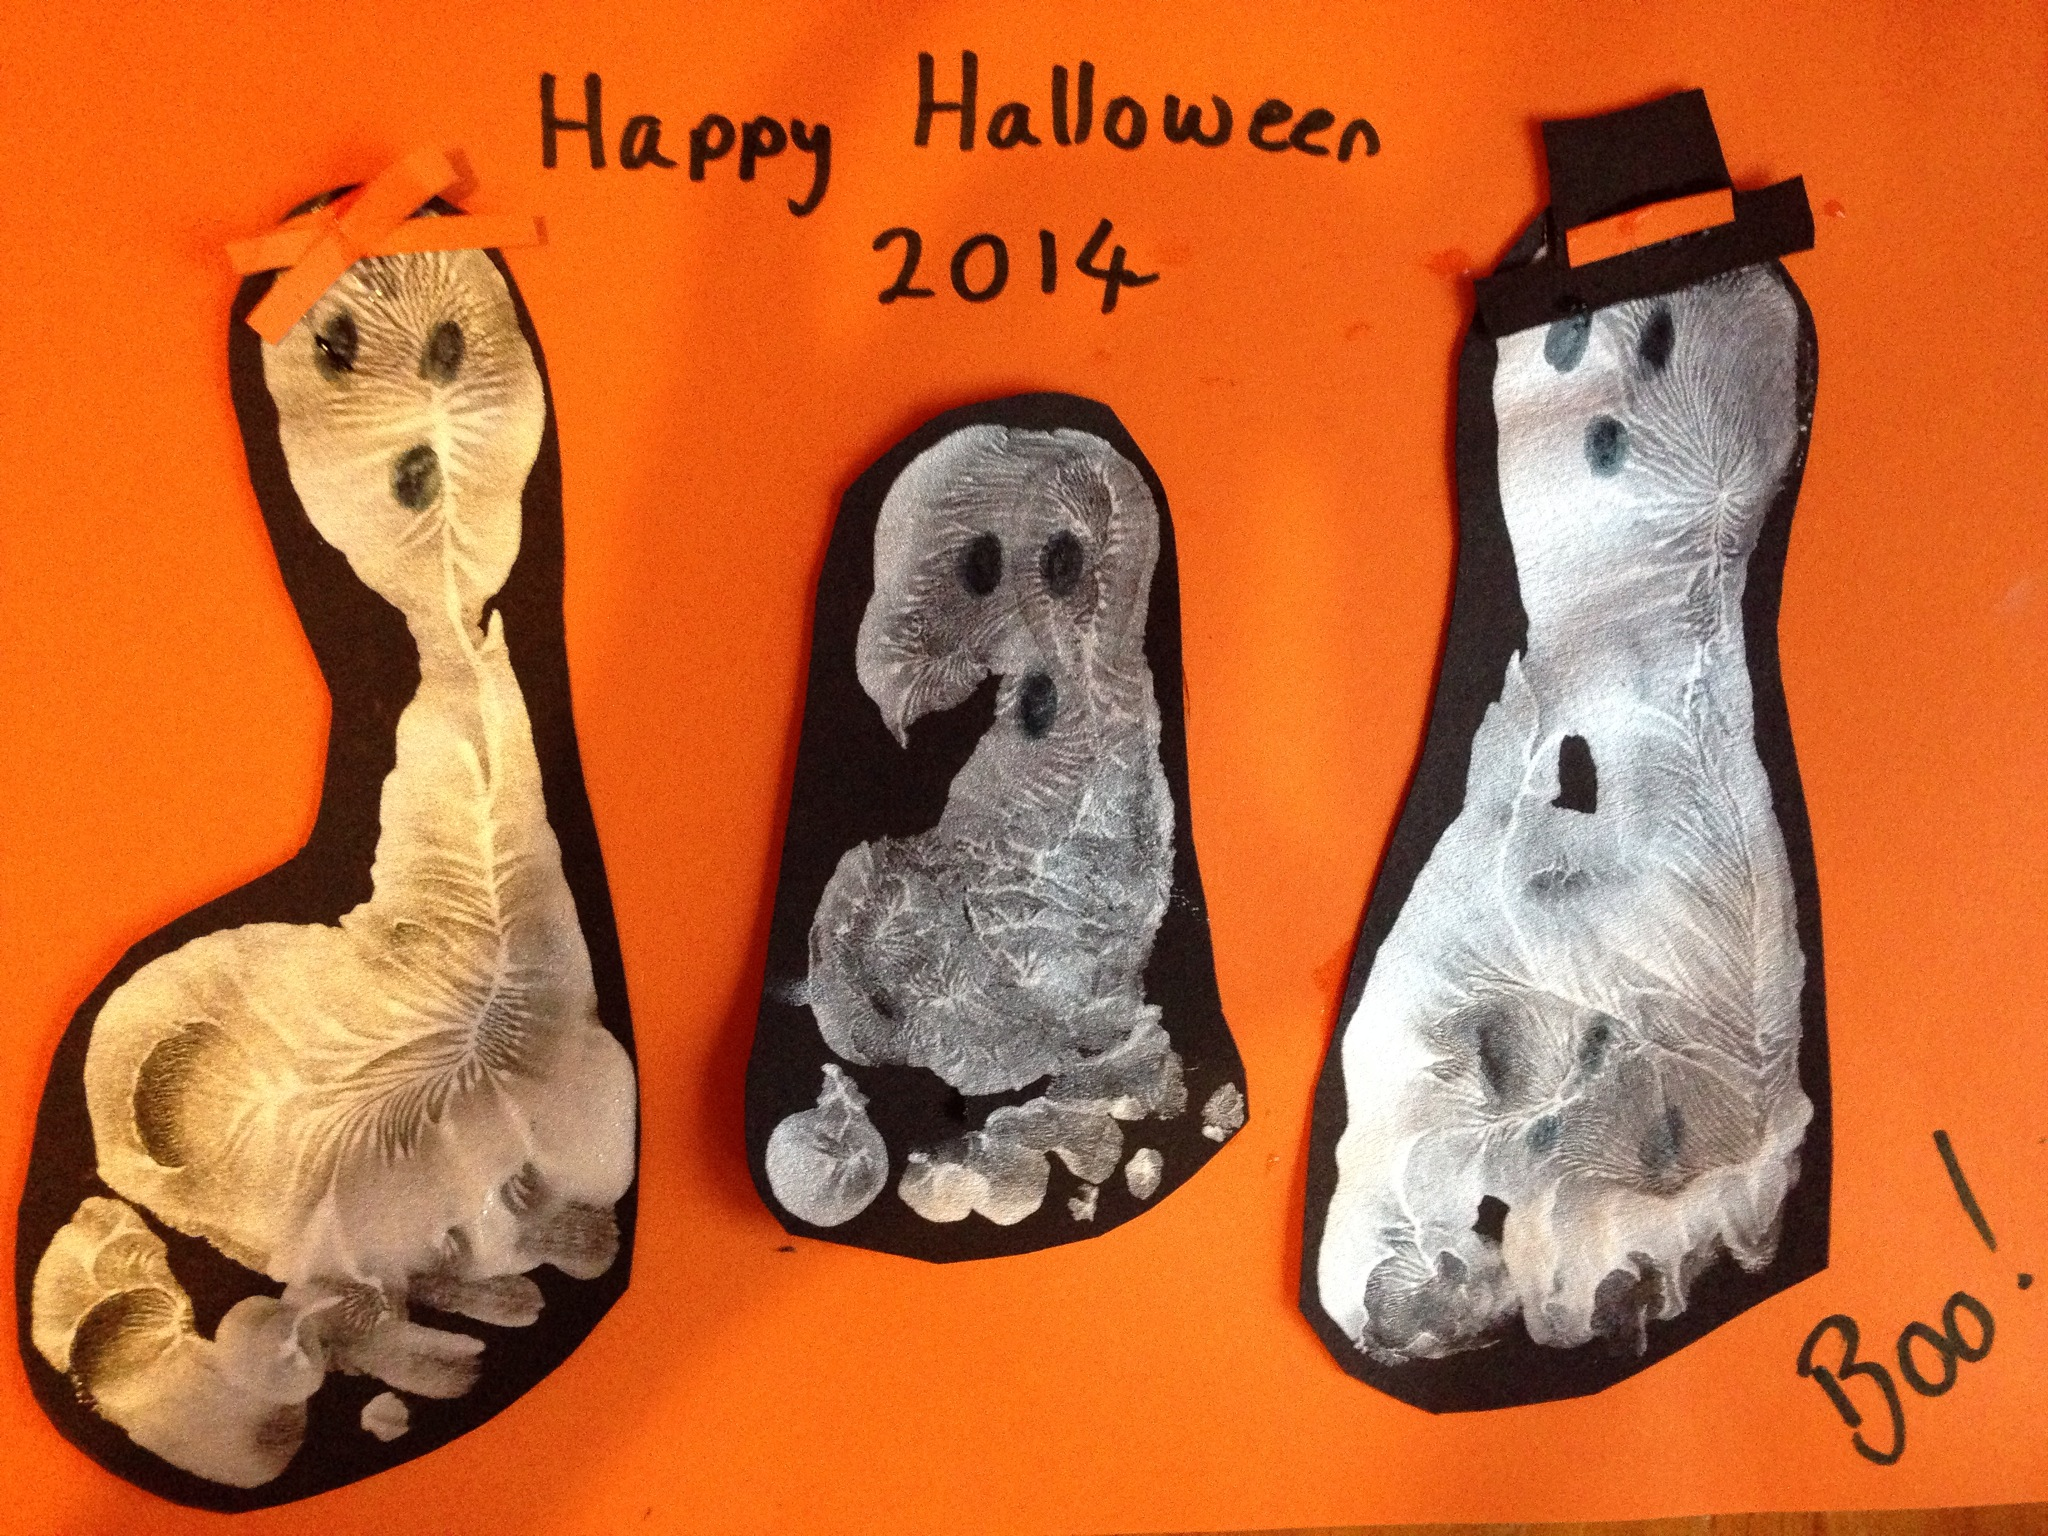 Our Halloween foot print ghosts